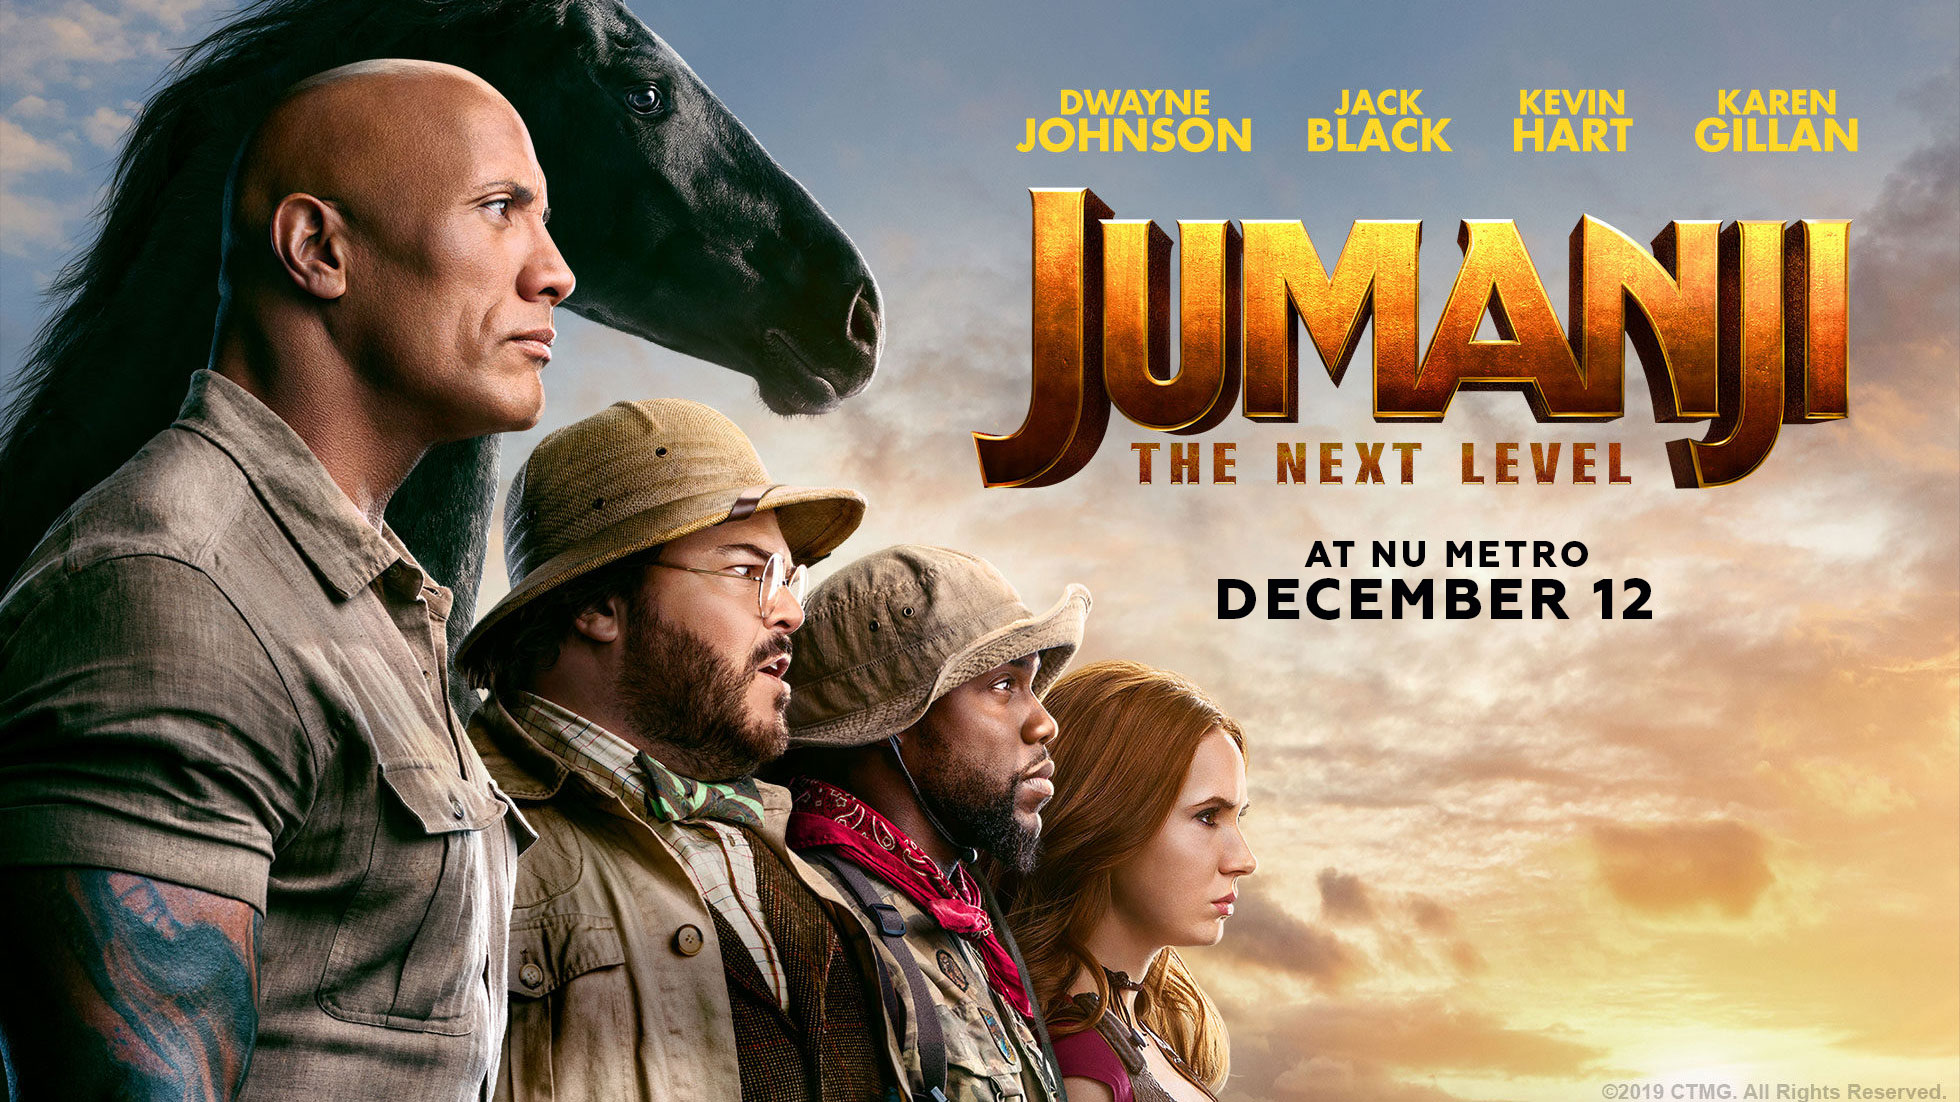 'Jumanji: The Next Level' - landscape artwork